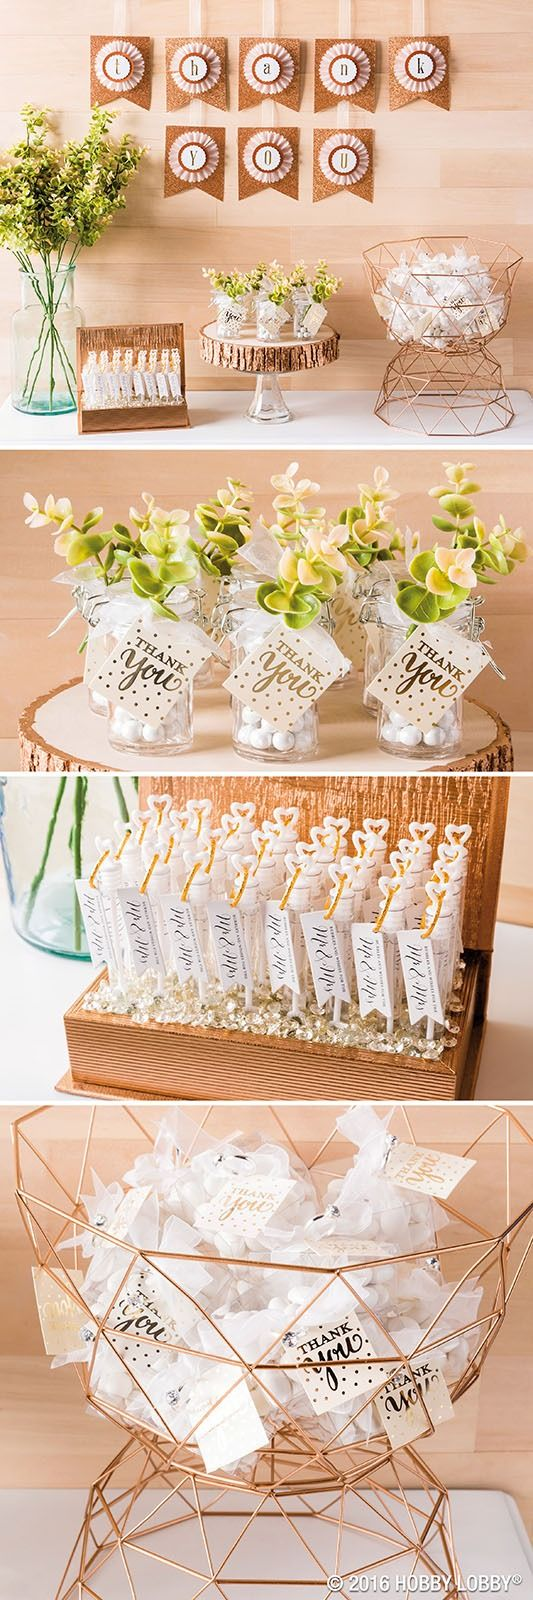 easy diy rustic wedding favors%0A DIY your way to a fabulous big day with readytogo wedding favors